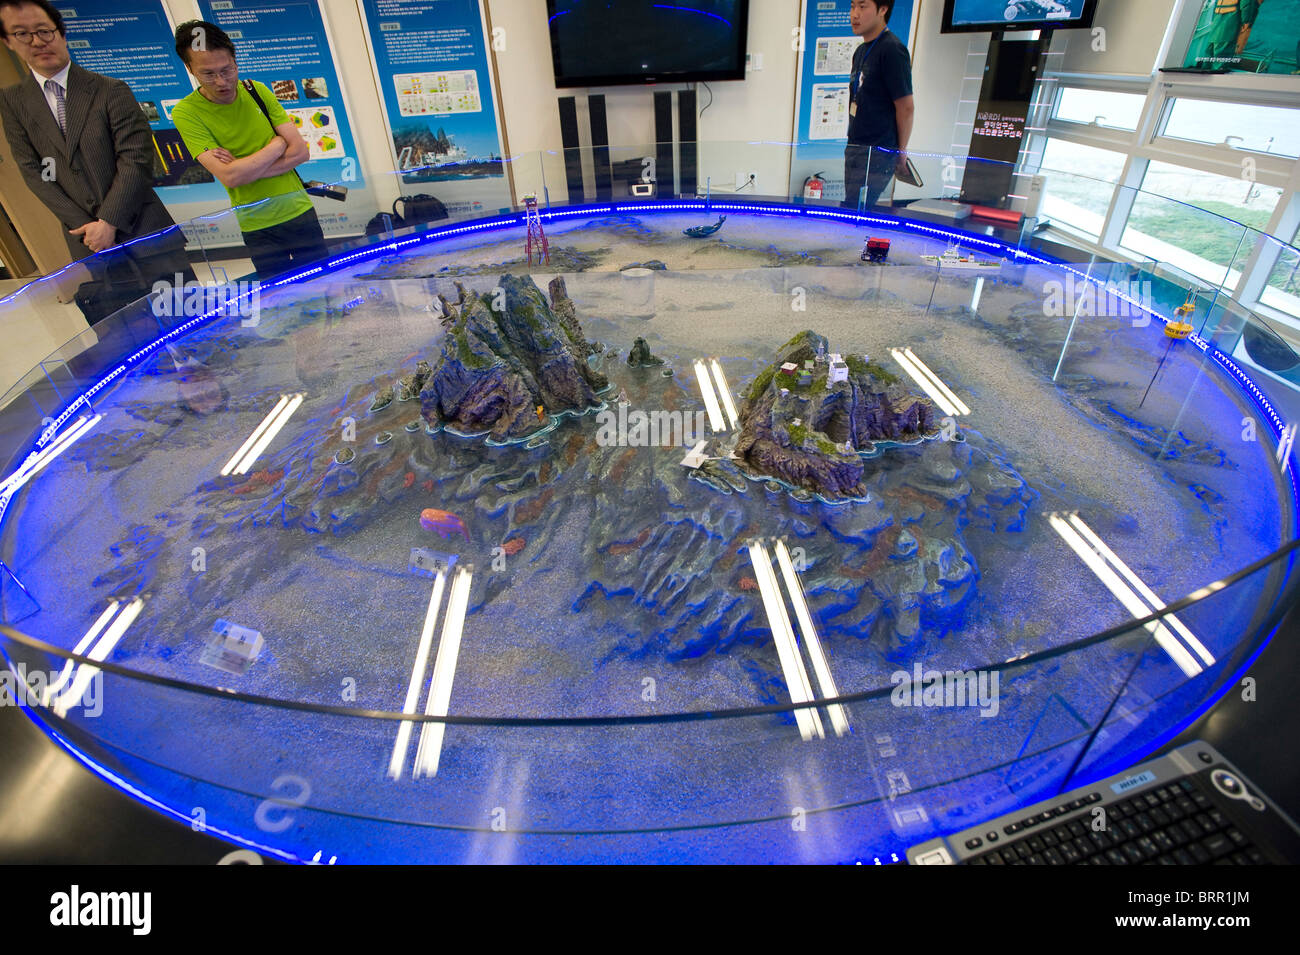 Officials look at a model of the disputed Dokdo Islands, known in Japan as Takeshima, at the East Sea Research Inst., - Stock Image